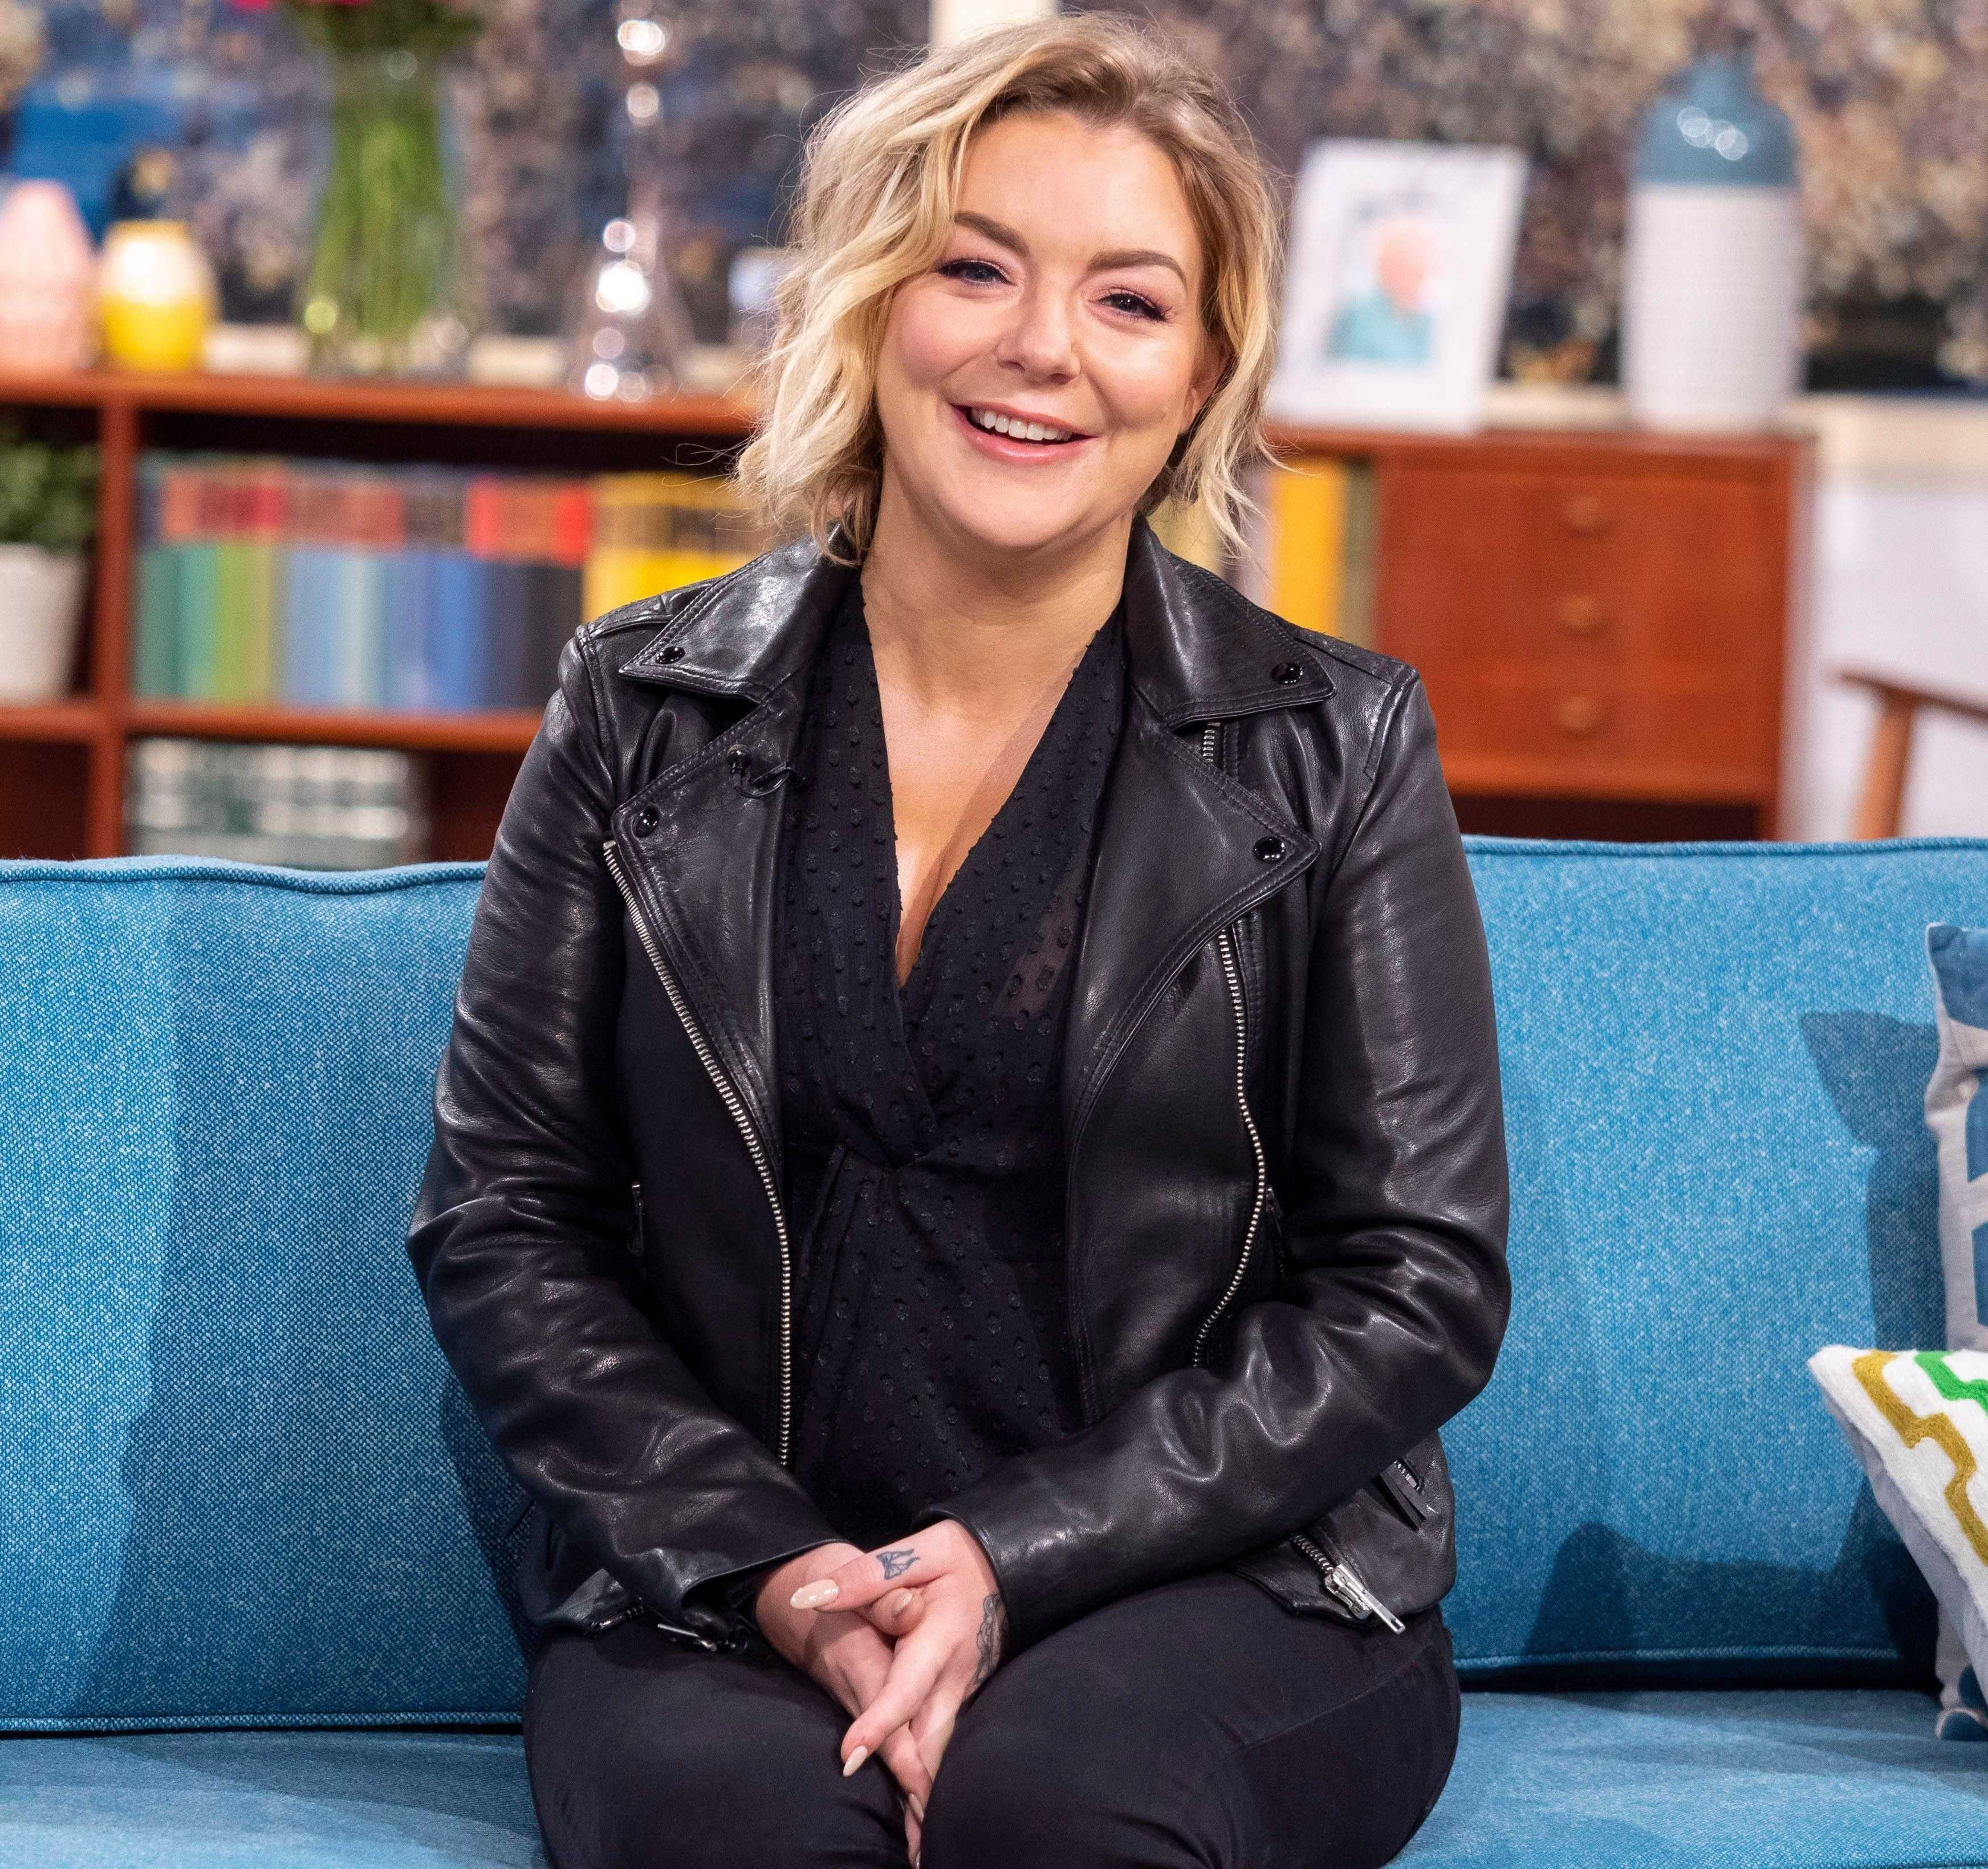 Sheridan Smith Career